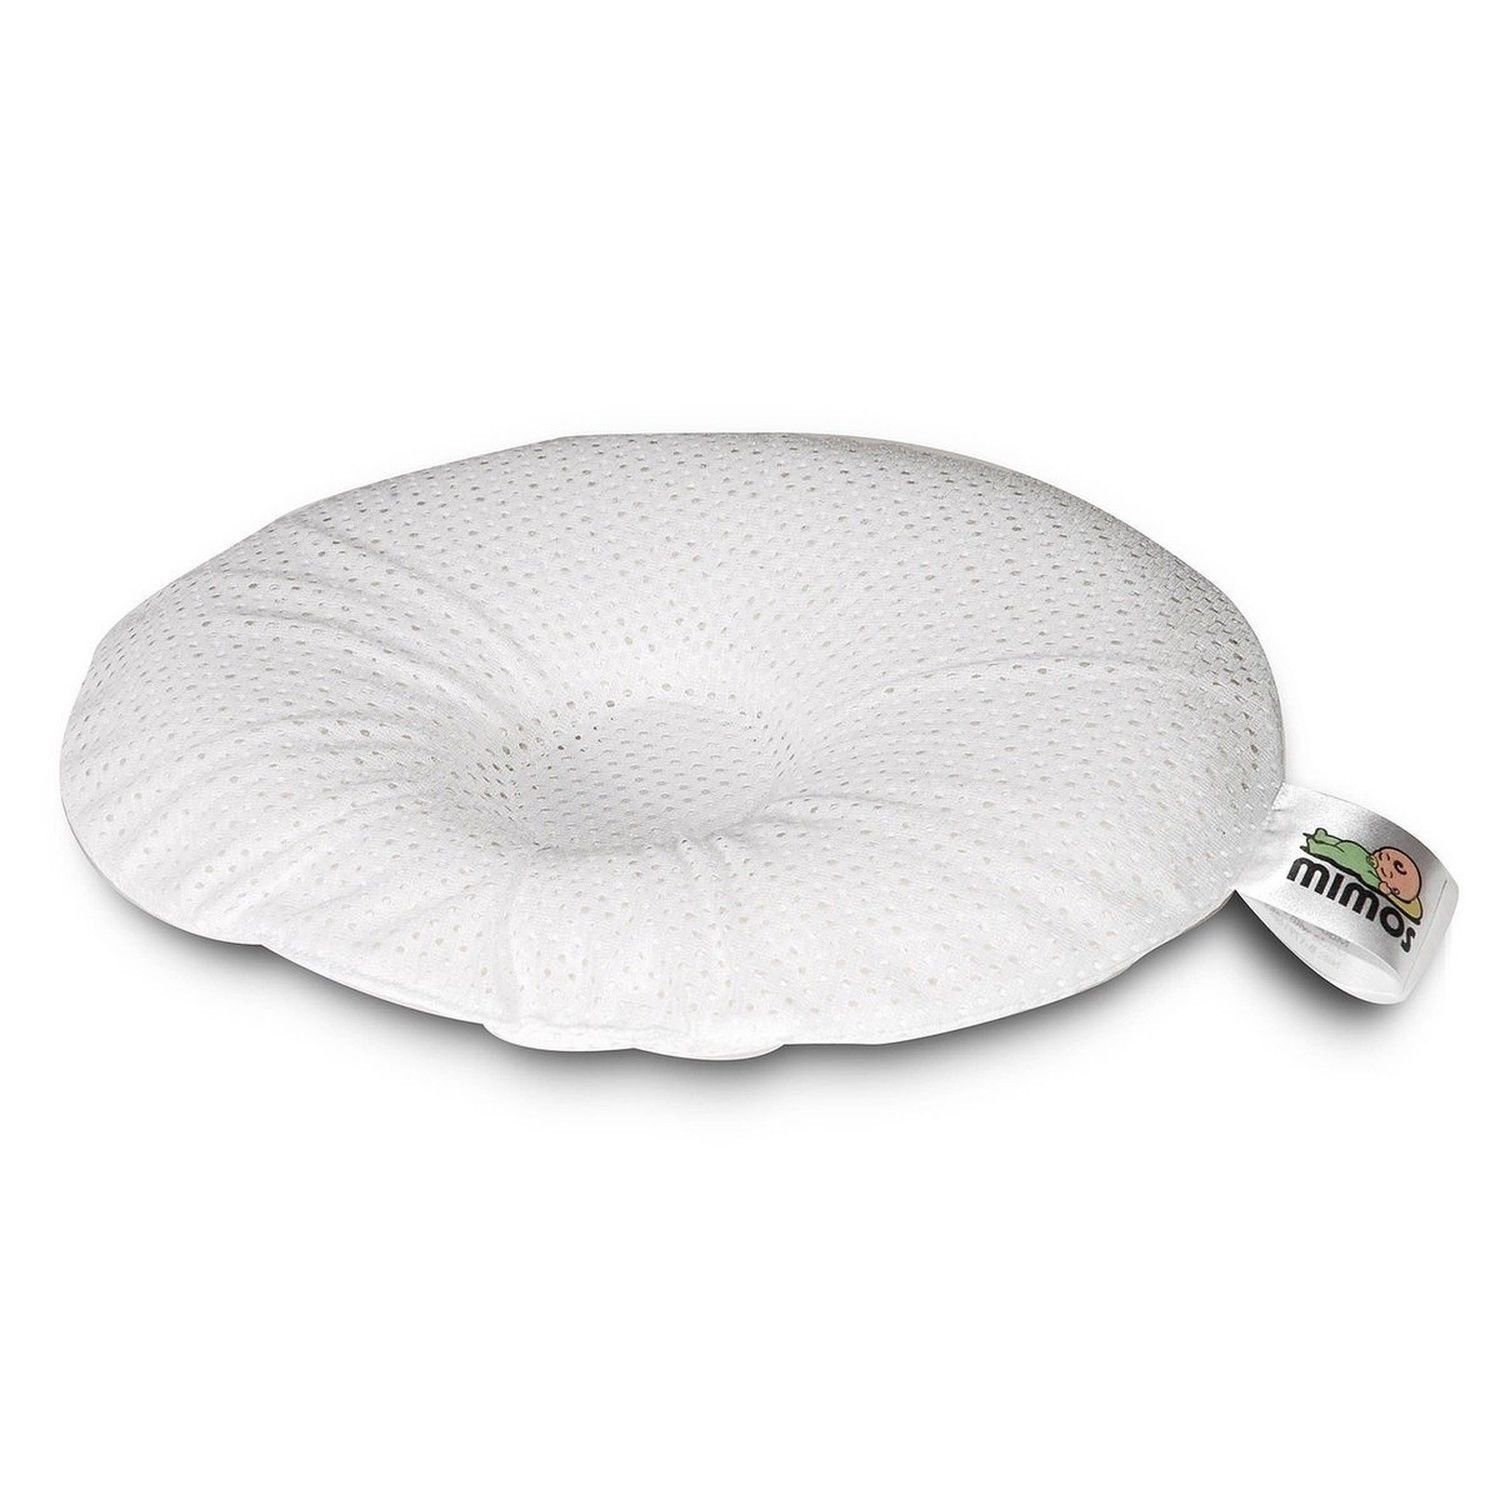 Baby Pillow (XL) - Airflow Safety (German TUV Certification) - Size XL (1- 10 Months) - The only breathable safe and clinically tested effective baby pillow for plagiocephaly